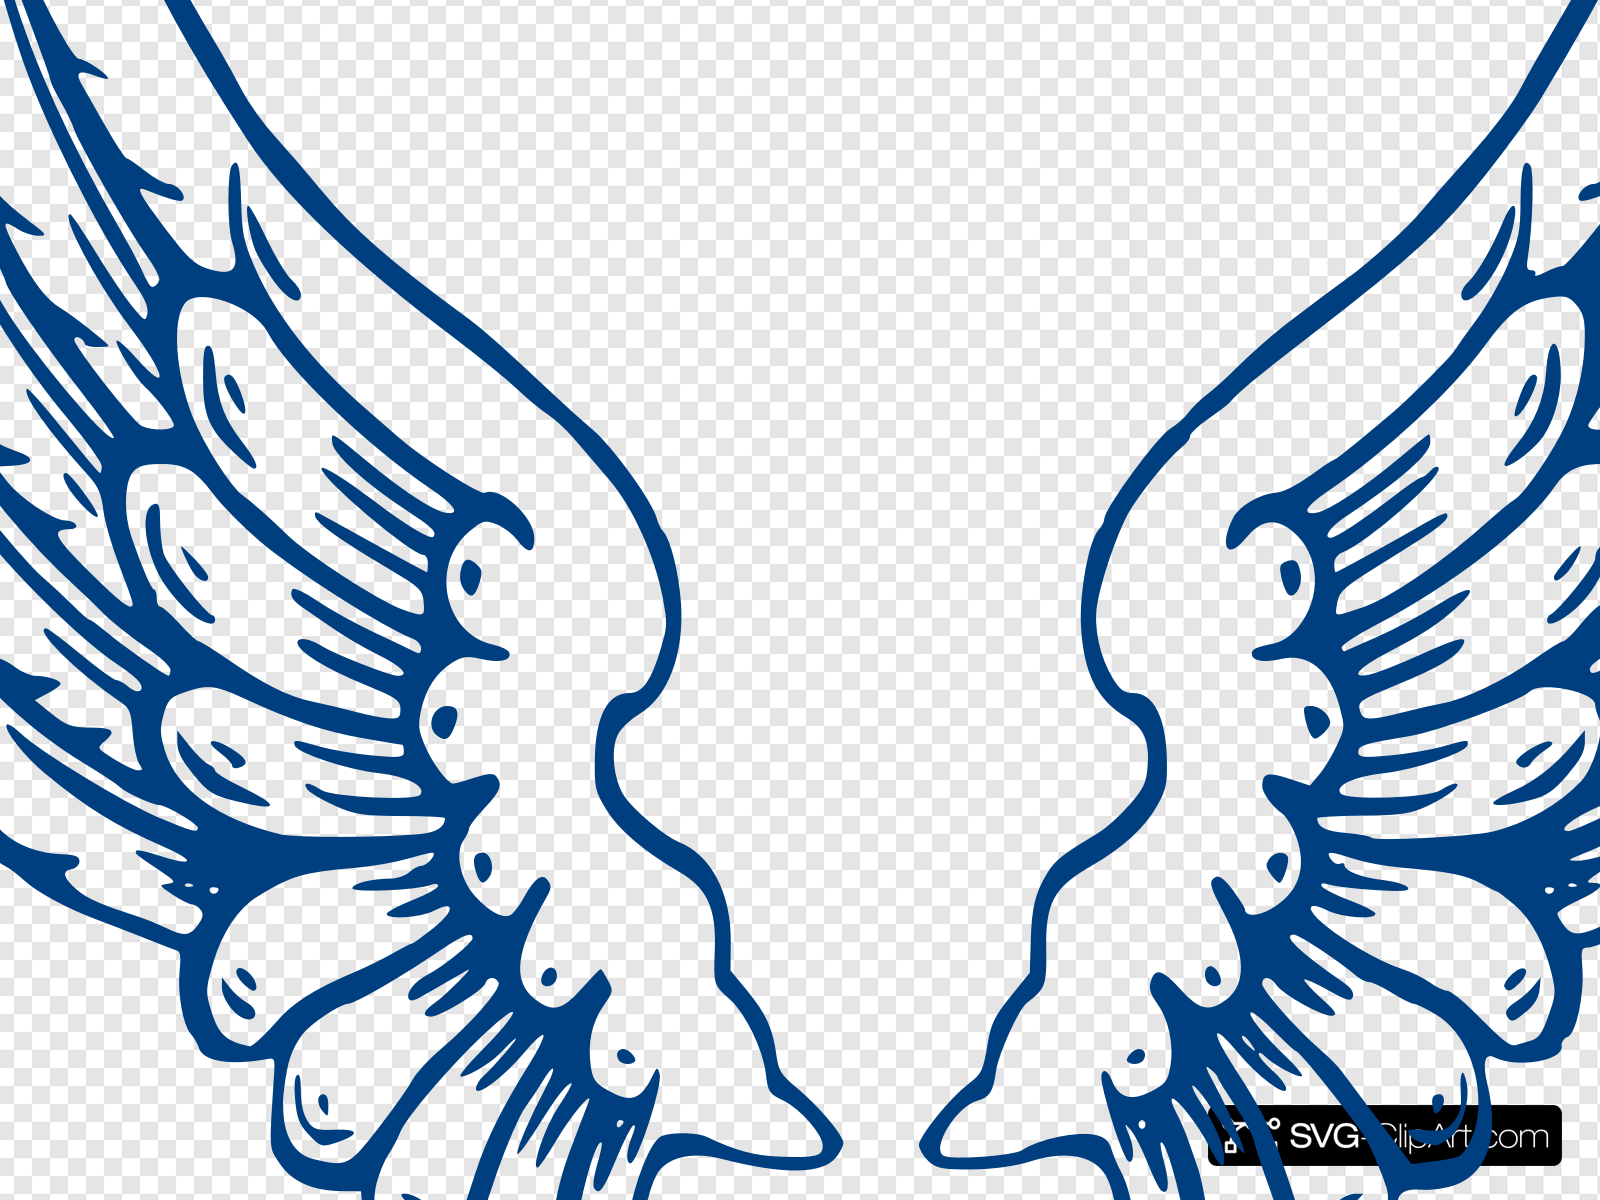 Wings1 Clip art, Icon and SVG.